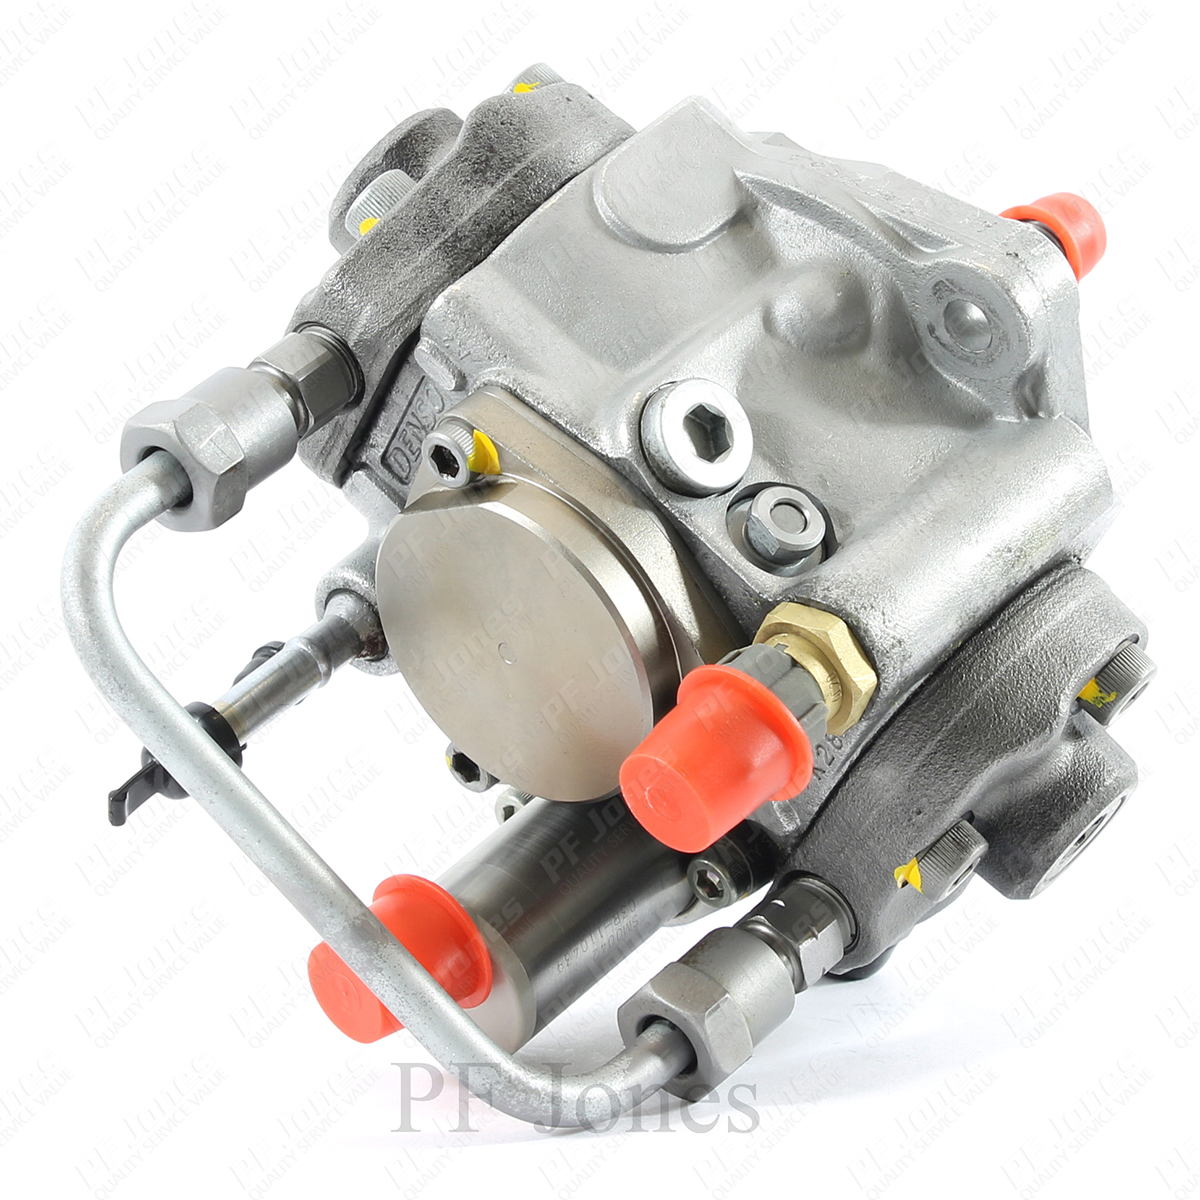 Toyota Avensis 2003 Onwards Reconditioned Denso Diesel Fuel Pump 294000-0170